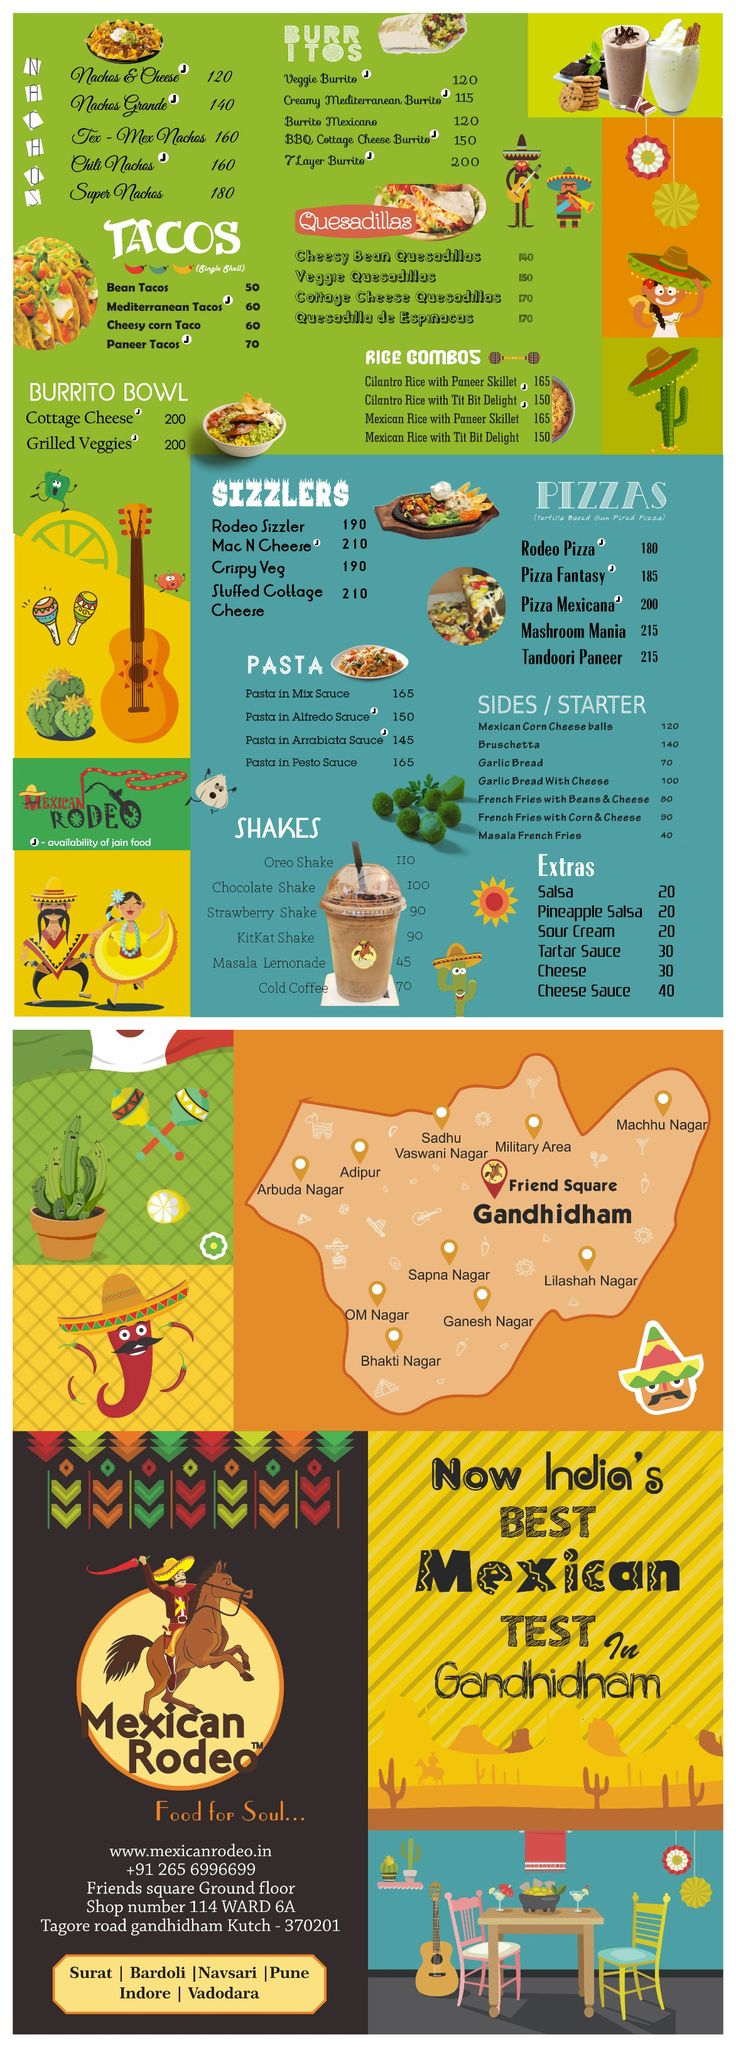 #leaflet #Mexican #rodeo #new-outlet #design #foods #FoodMenu